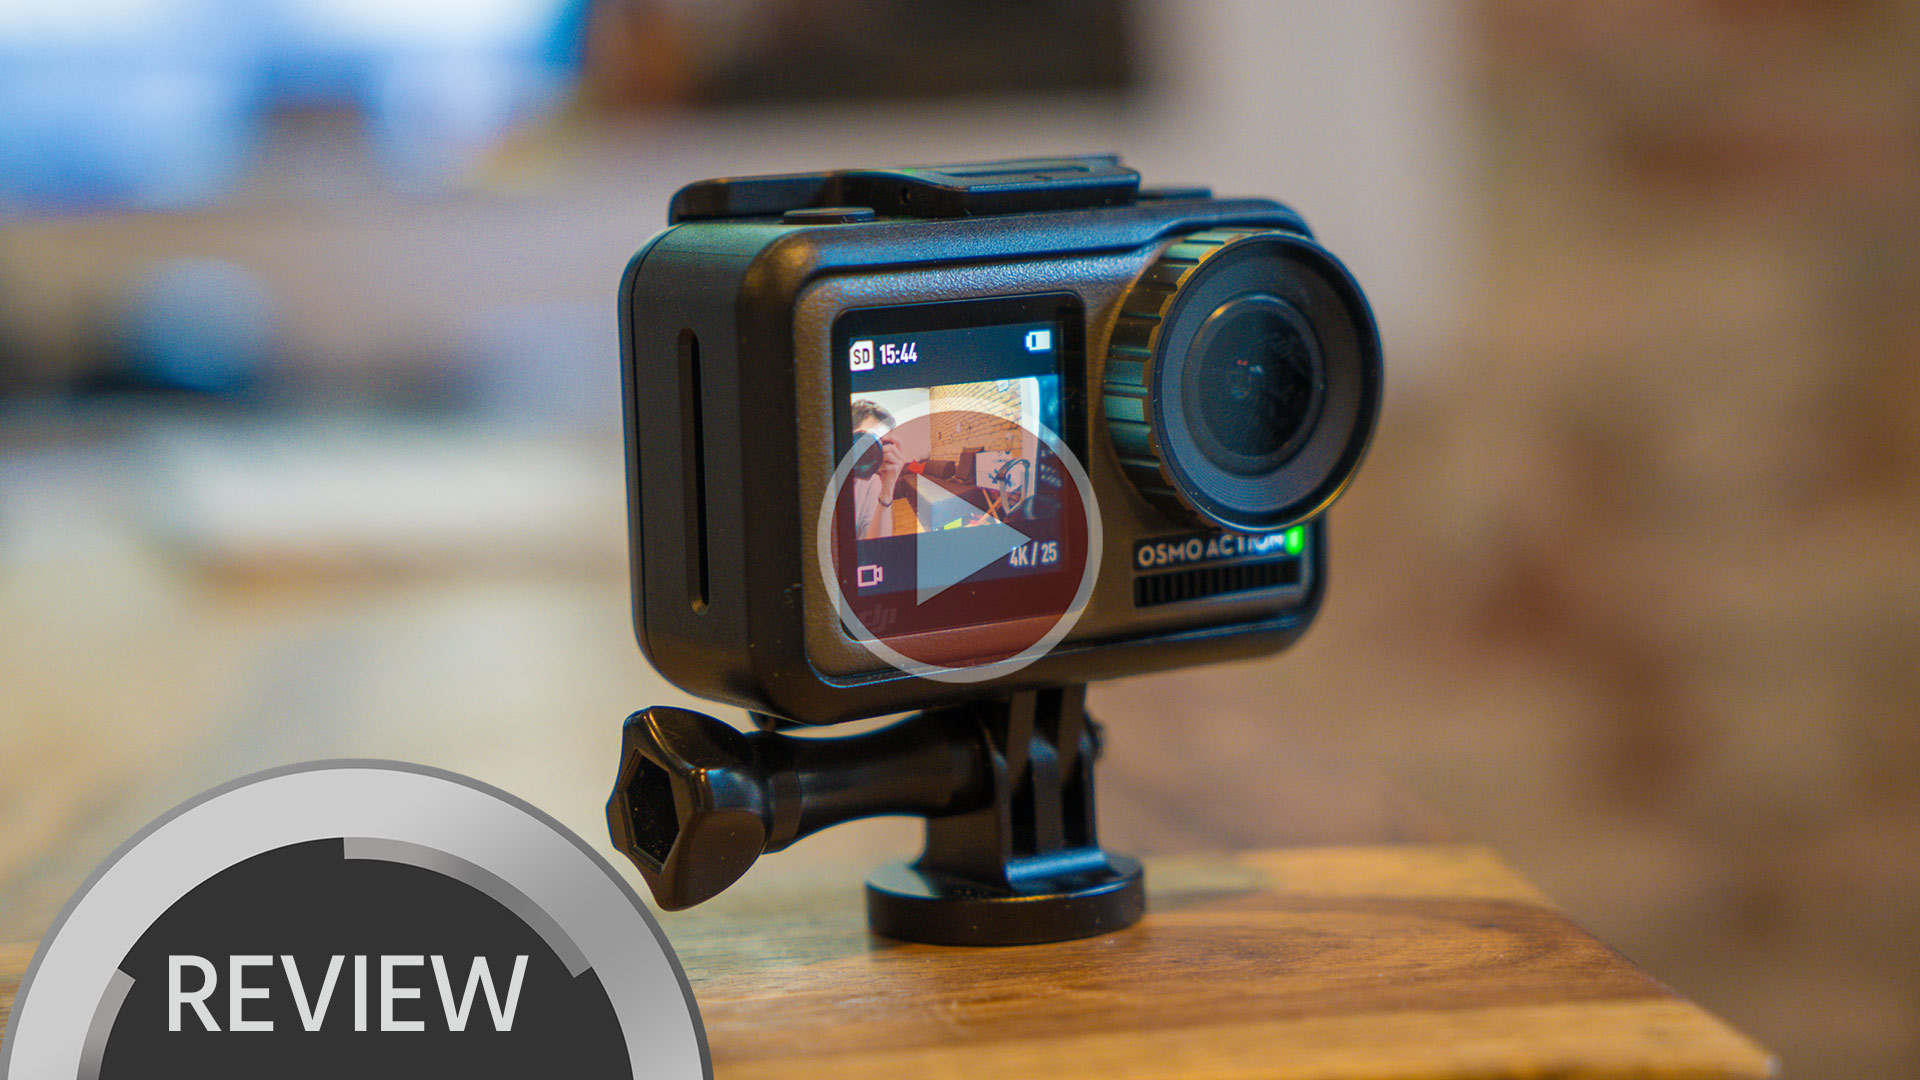 Dji Osmo Review >> Dji Osmo Action Review Hands On With The New Action Cam Cinema5d